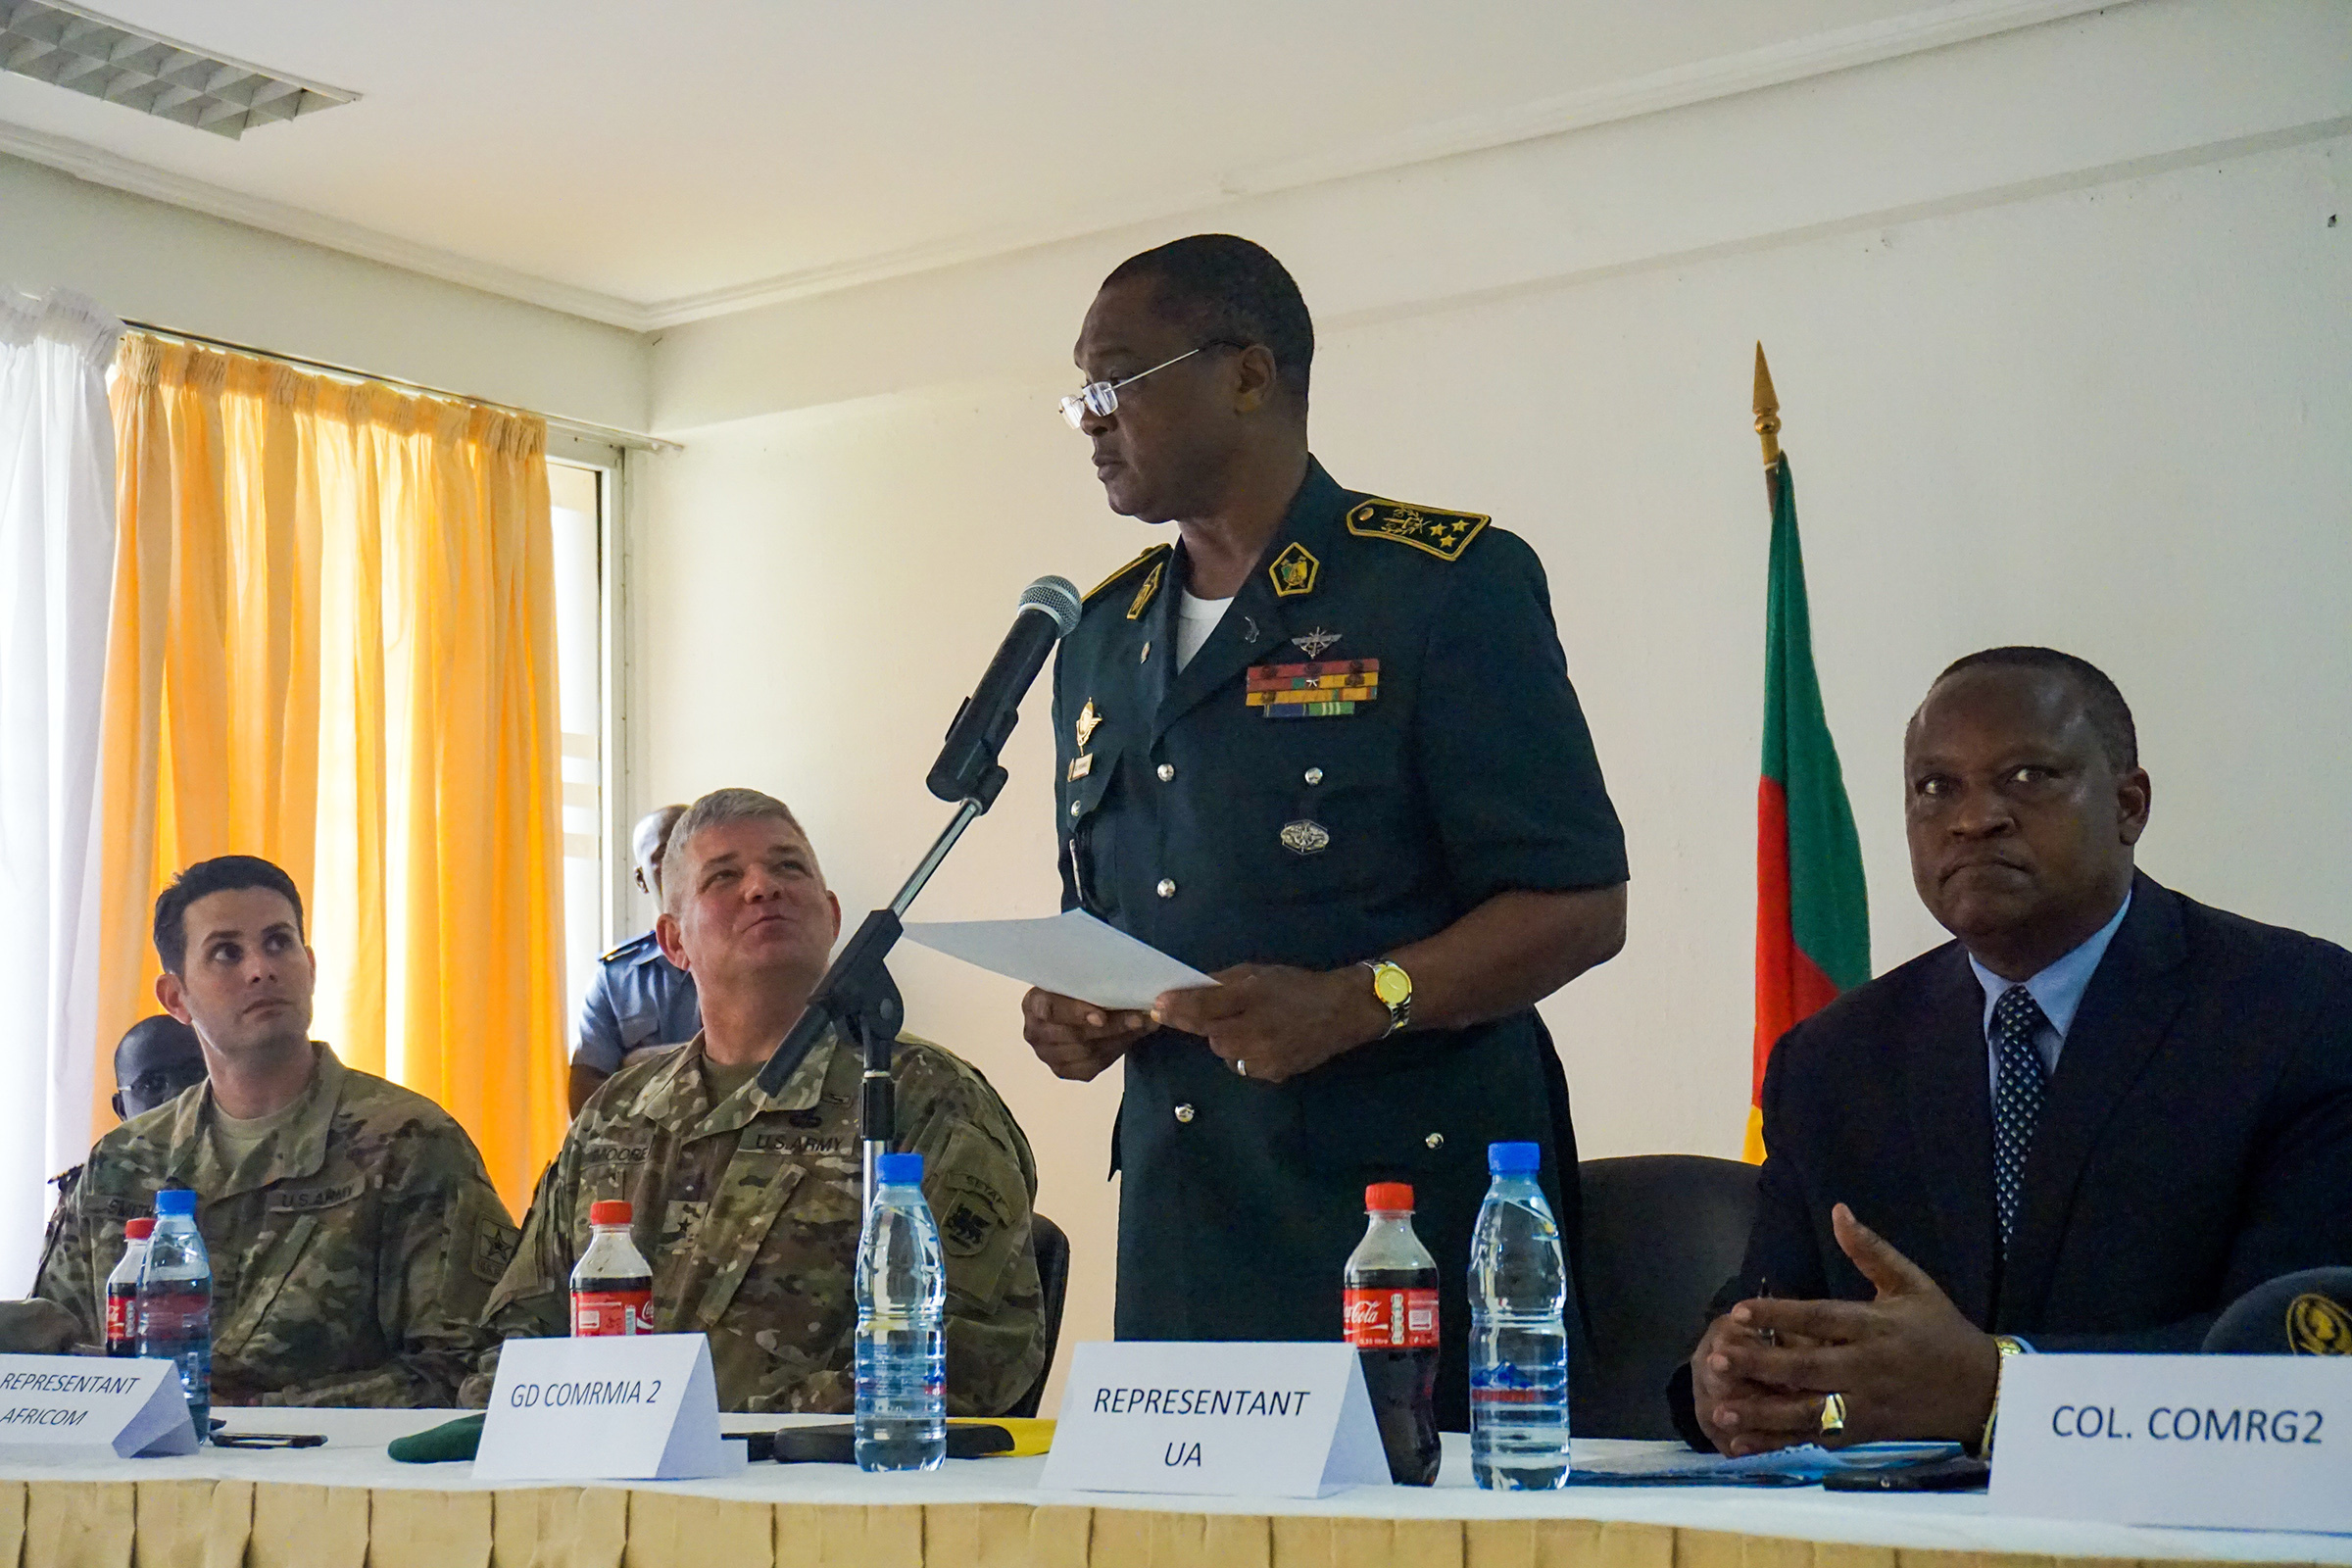 Cameroonian Maj. Gen. Saly Mohamadou, the regional commander and senior host for the planning event, provides remarks during the opening ceremony for the Unified Focus 2017 final planning event (FPE), Douala, Cameroon, Feb. 6, 2017. The UF17 FPE brought partner nation planners together to discuss and shape the inaugural Unified Focus exercise designed to enhance and enable Lake Chad Basin Commission nations to support the Multinational Joint Task Force (MNJTF) counter-Boko Haram operations. (U.S. Army Africa photo by Capt. Jason Welch/Released)